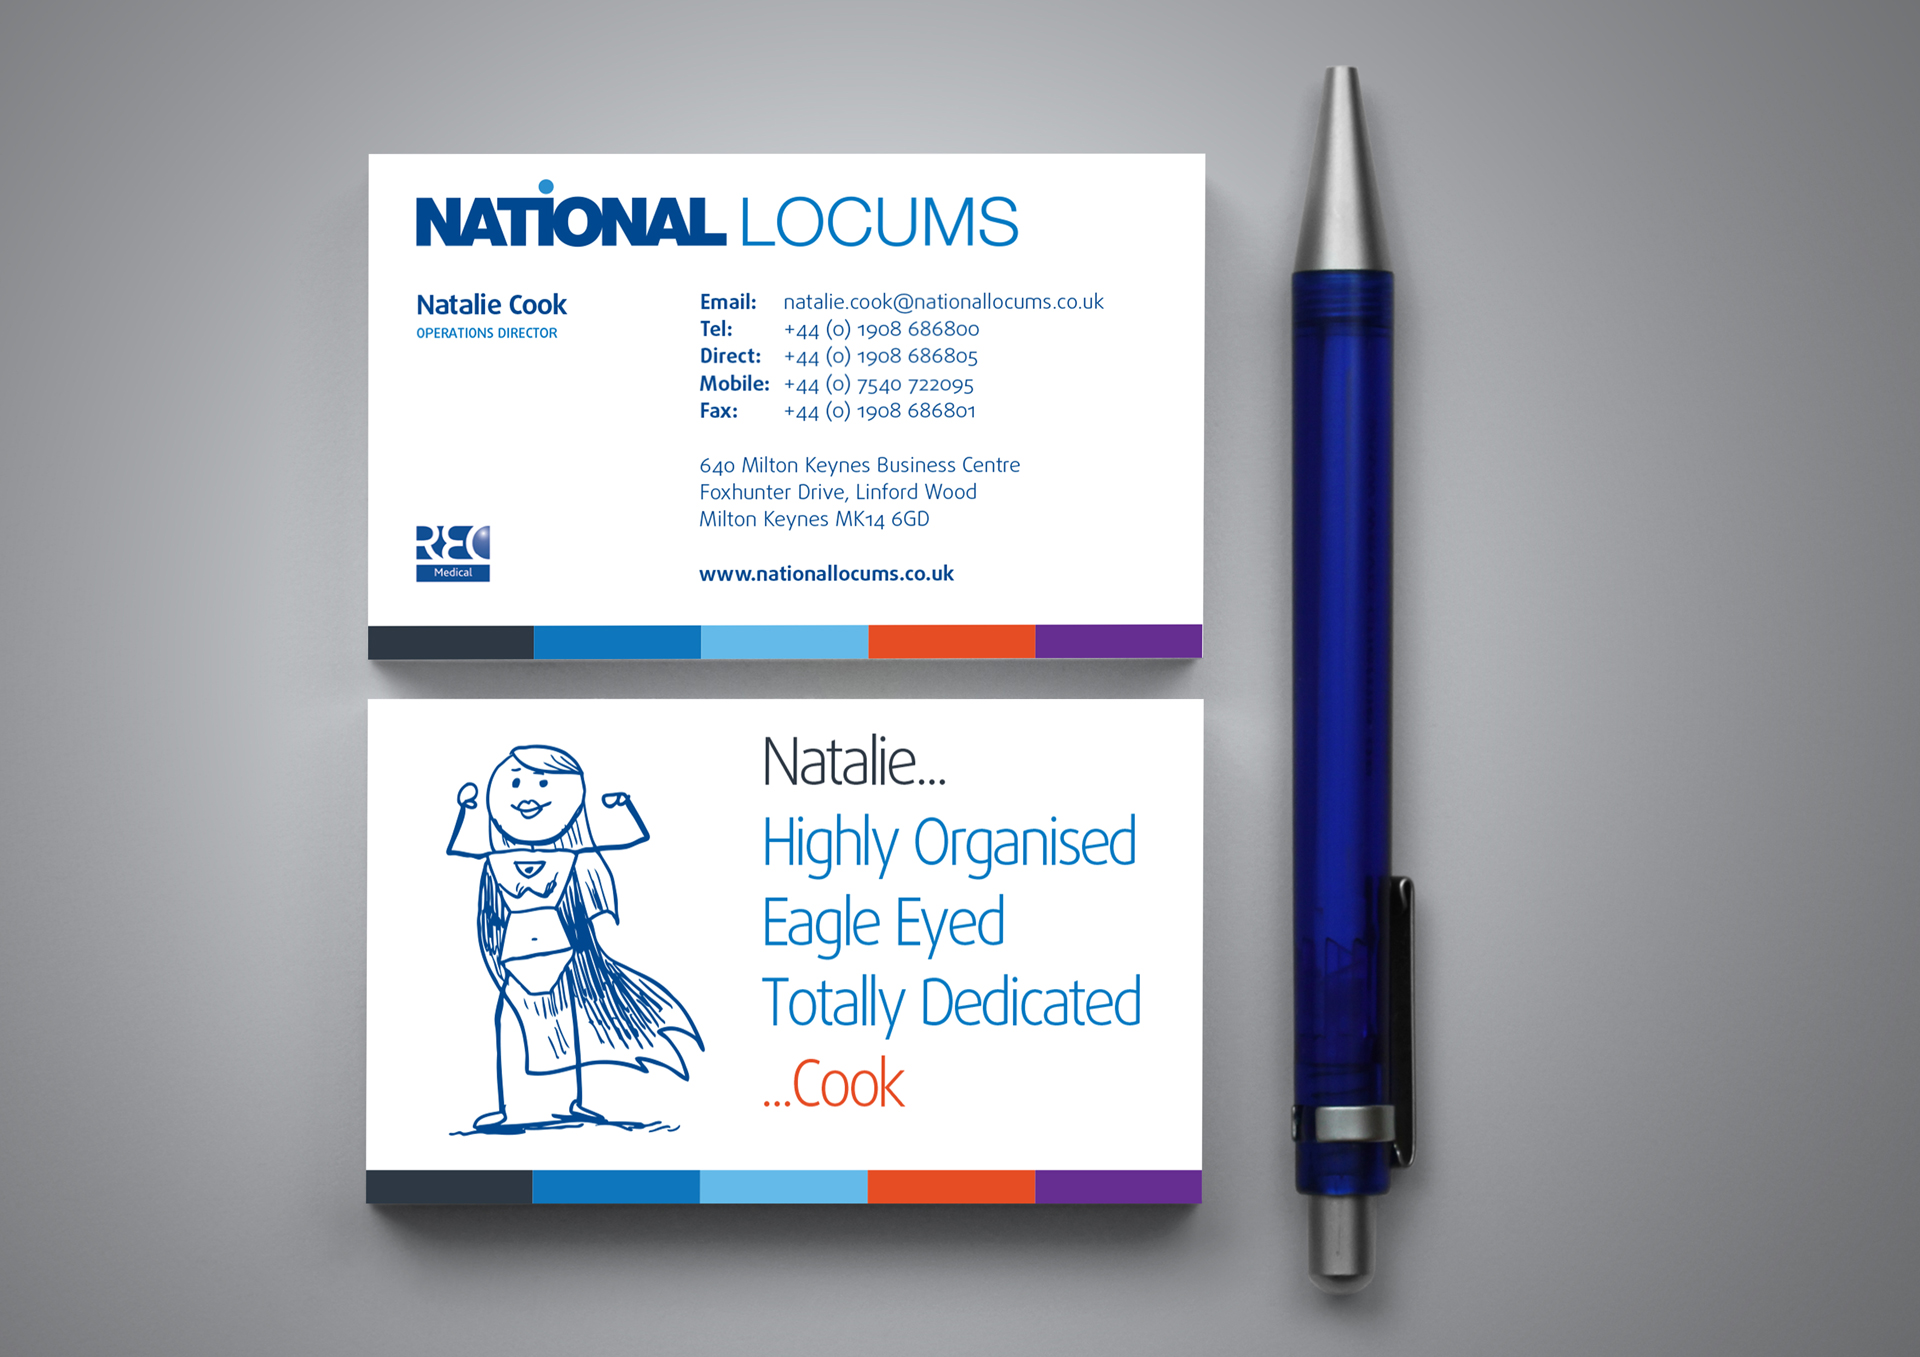 Brothers Creative | National Locums Wordpress Website and Branding